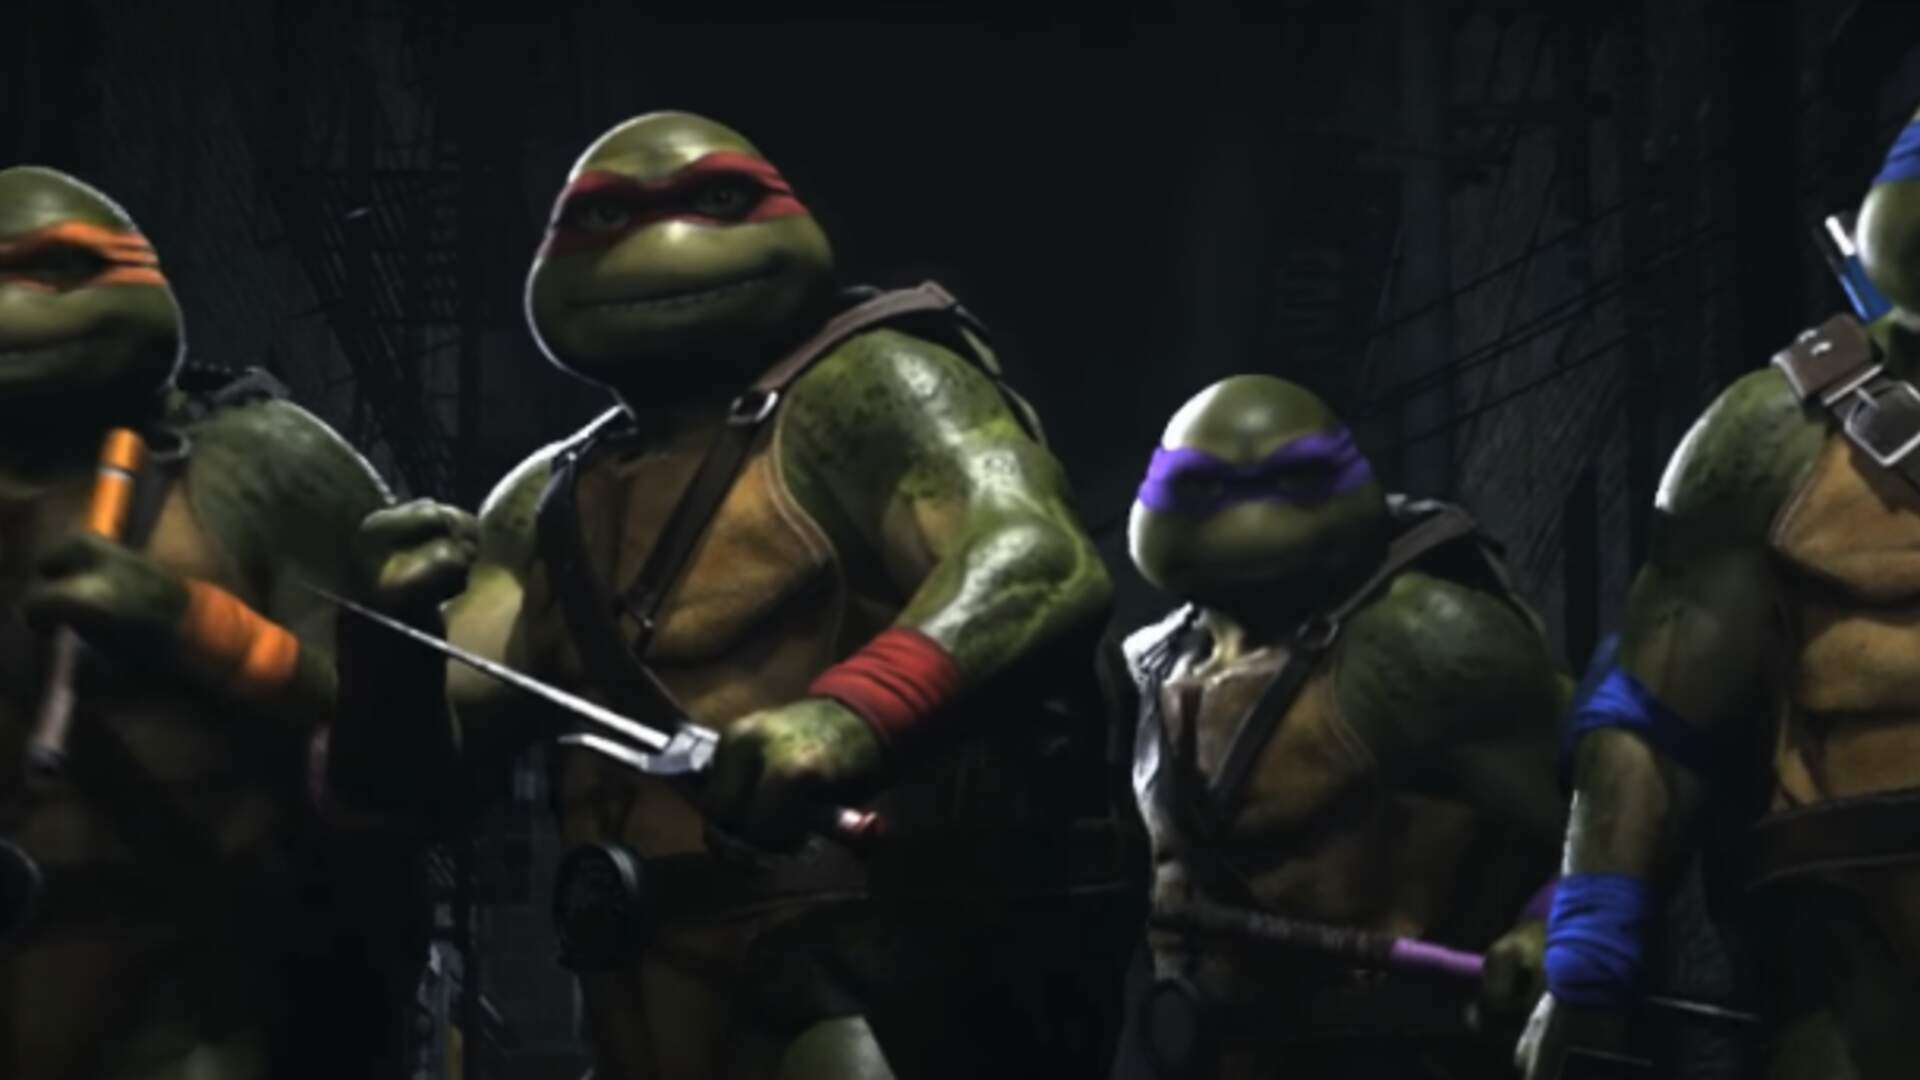 Injustice 2's Next Fighter Pack Adds The Teenage Mutant Ninja Turtles